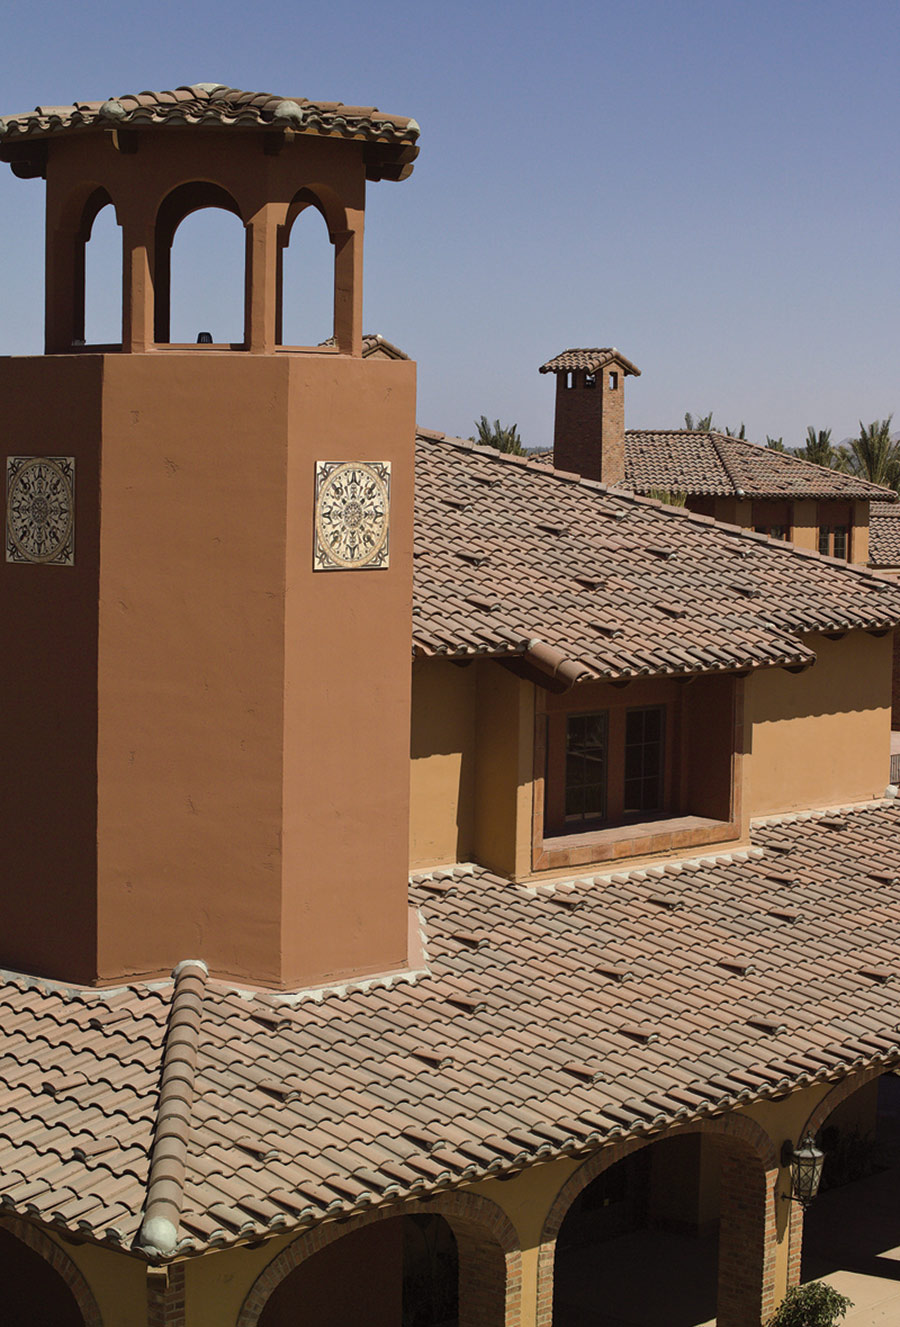 Boosted Roof Tiles - 10 Percent